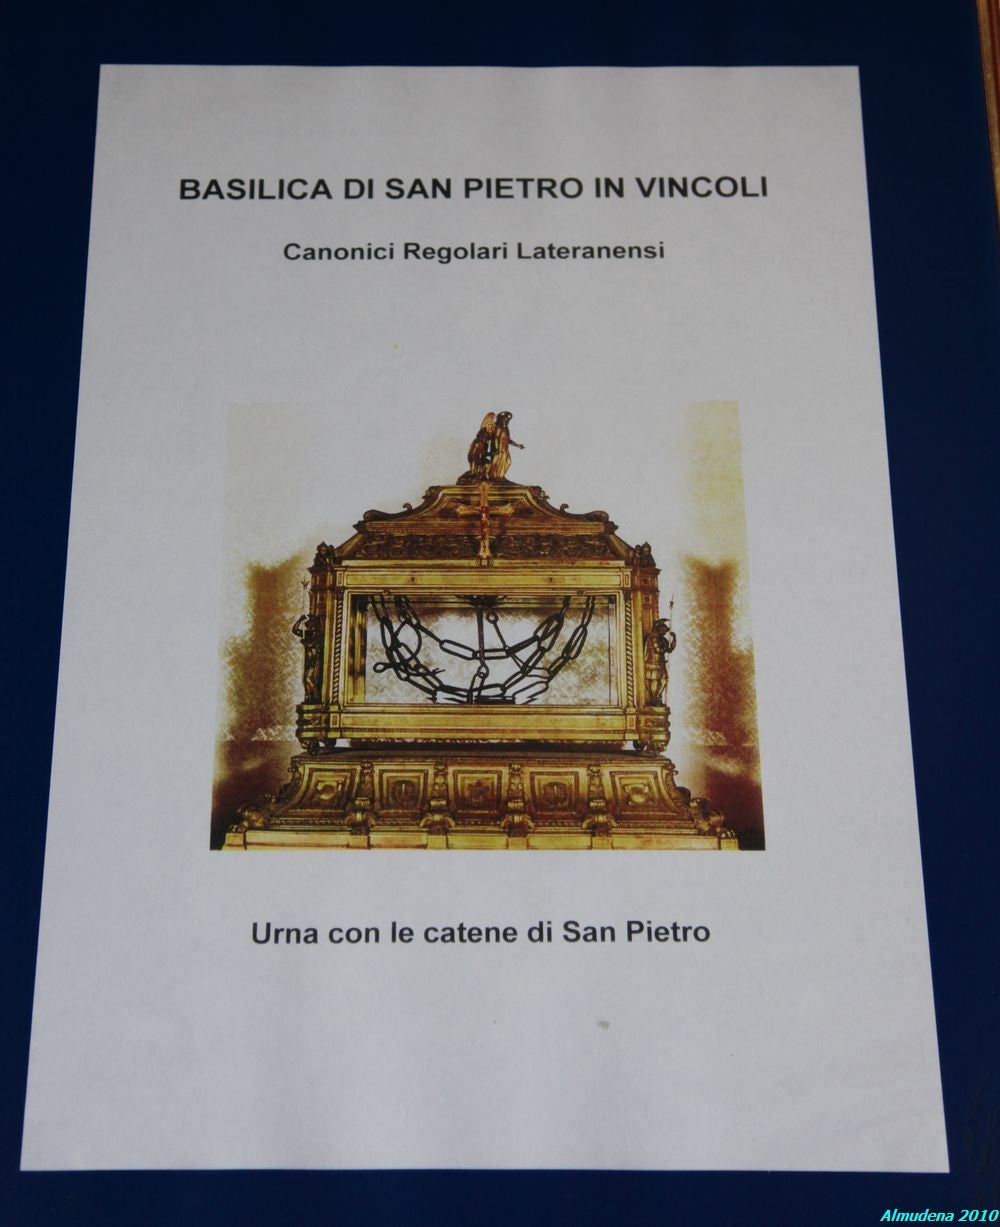 Documento en San Pietro in Vincoli